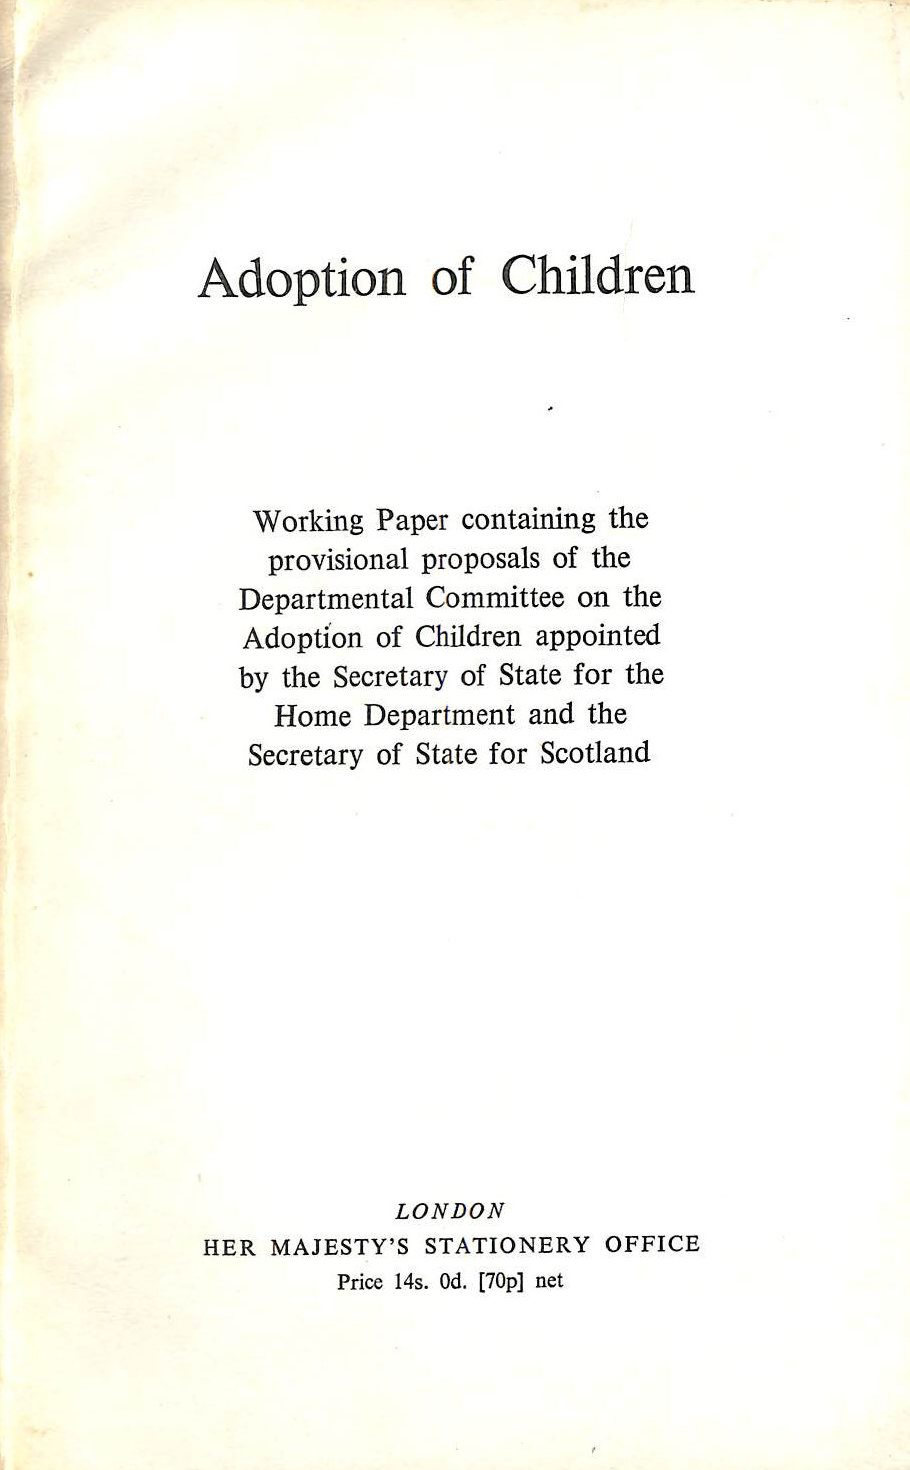 Image for Adoption of Children: Working Paper Containing the Provisional Proposals of the Departmental Committee on the Adoption of Children Appointed by the Secretary of State for the Home Department and the Secretary of State for Scotland